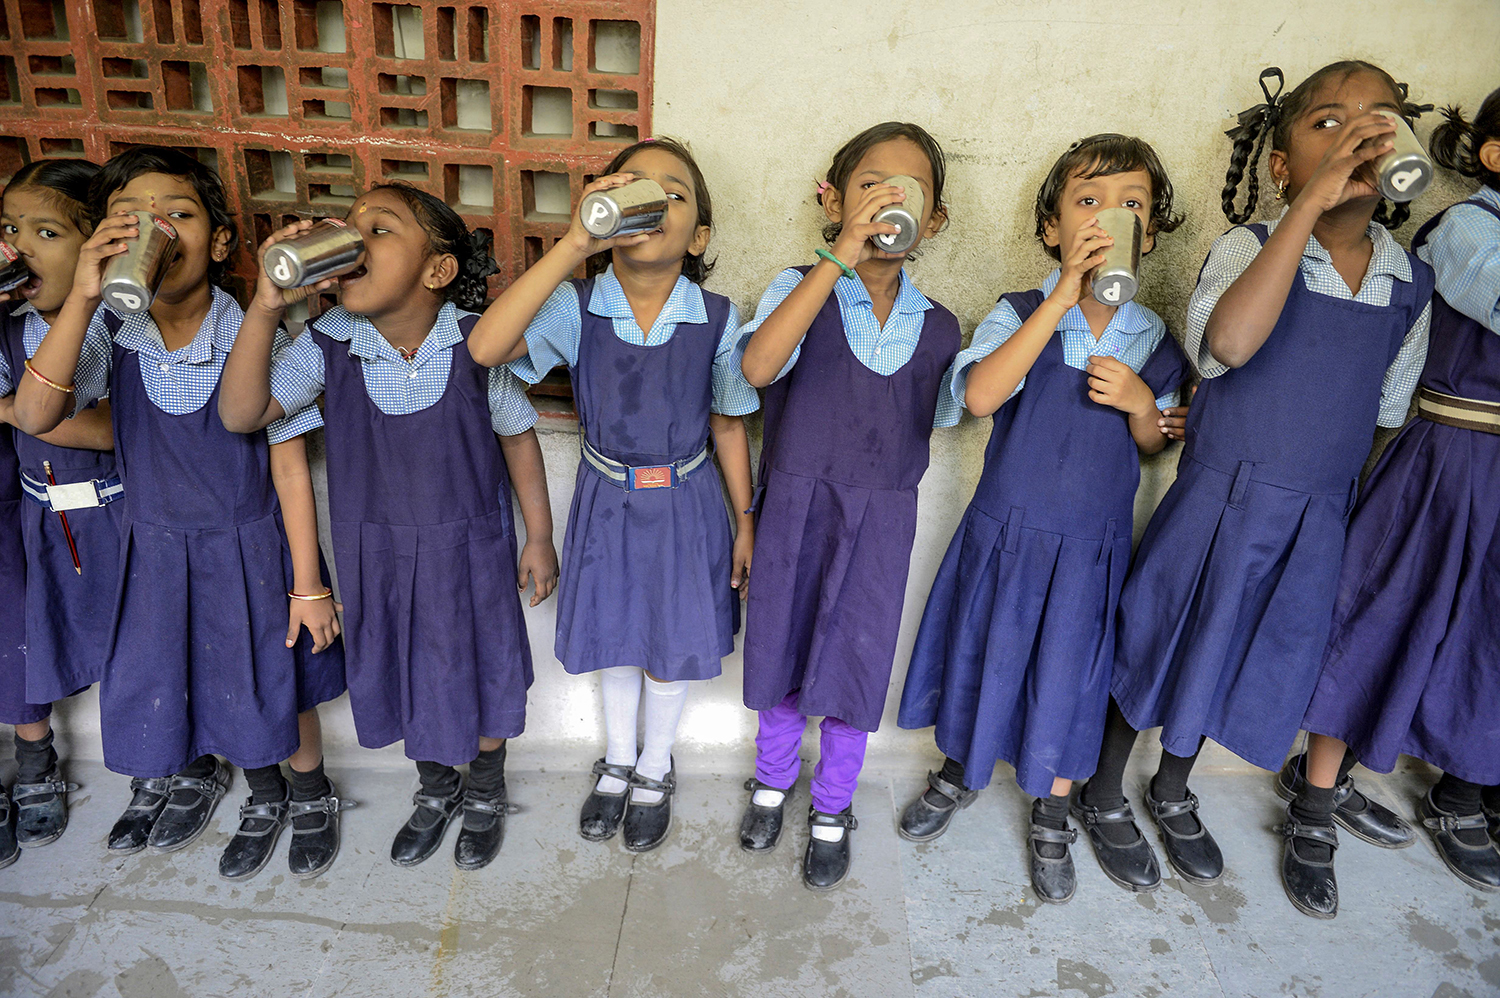 Schoolchildren drink water during the Water Bell program launched by Telangana government, to ensure children drink sufficient water in the day, at a government-run school in Secunderabad, India, on Nov. 21. NOAH SEELAM/AFP via Getty Images